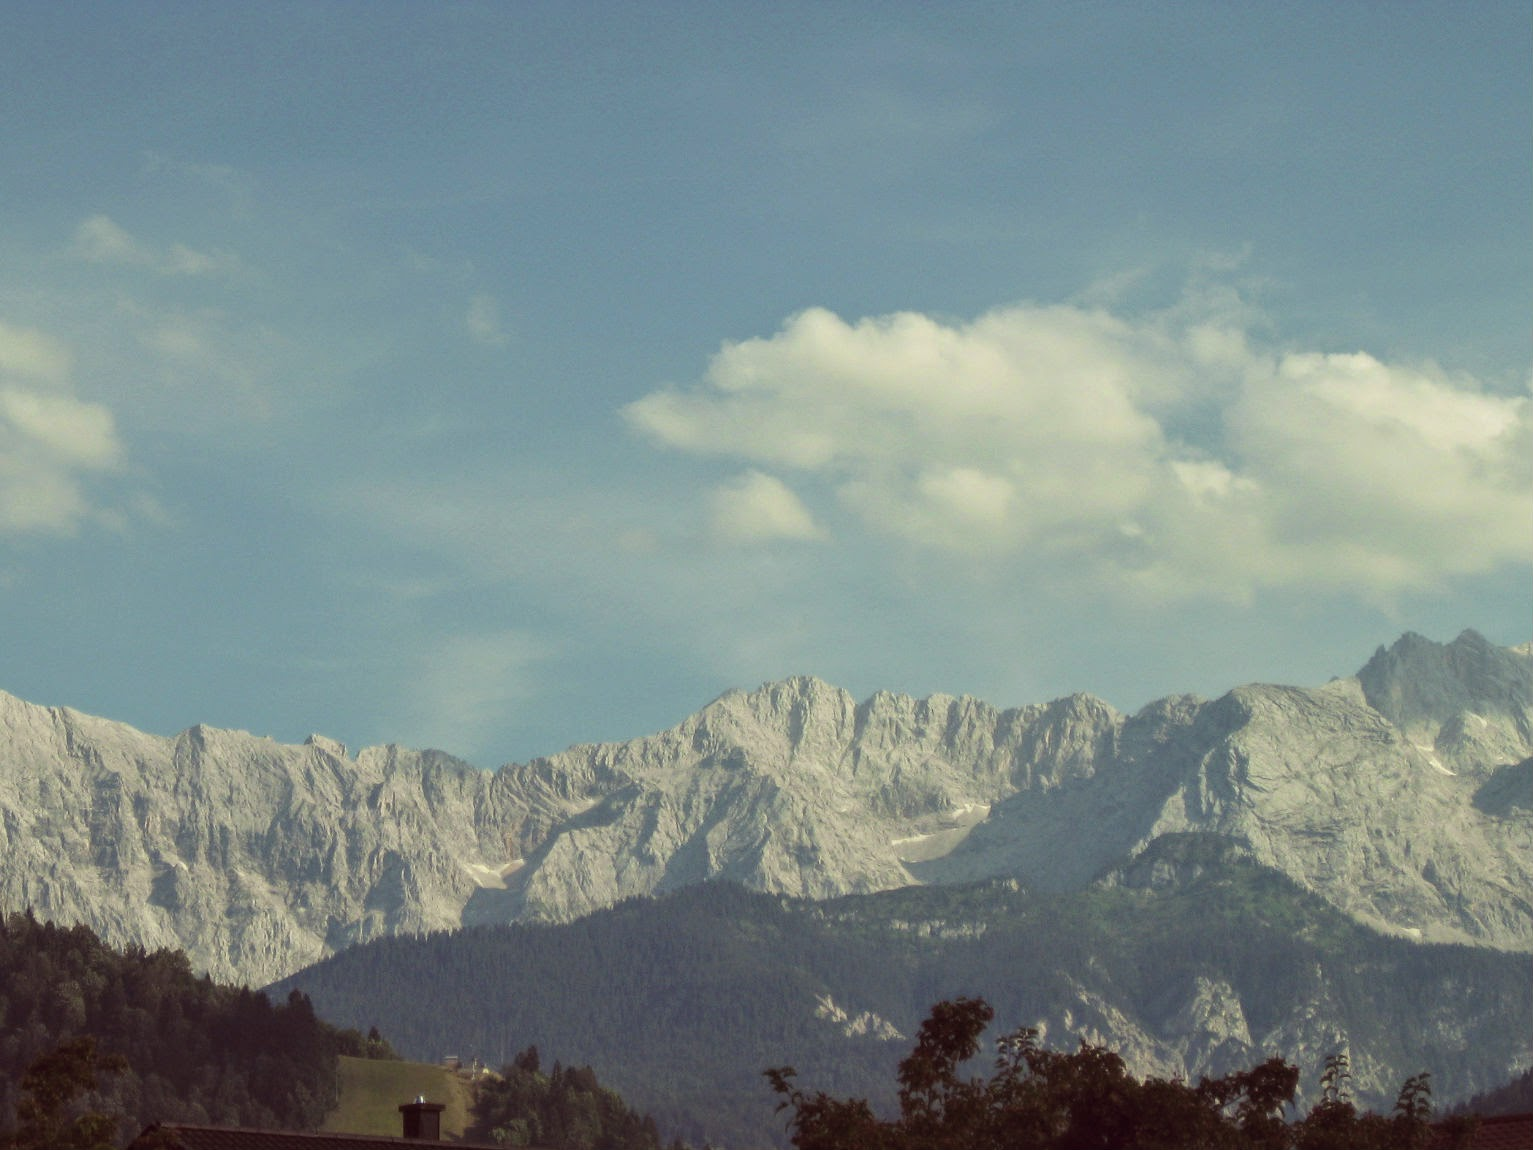 View of the Alps from Garmisch-Partenkirchen